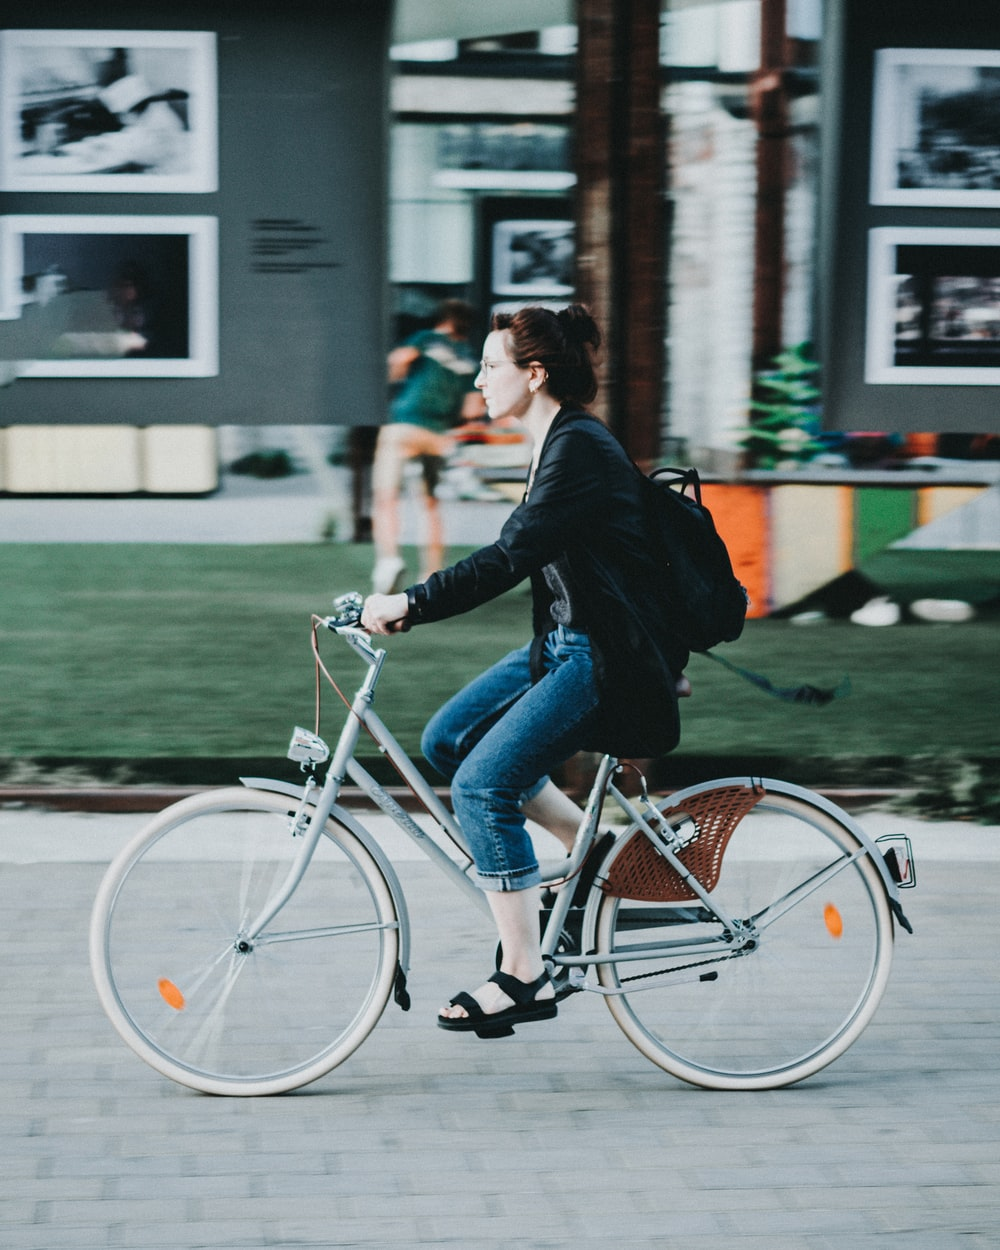 woman riding on bicycle